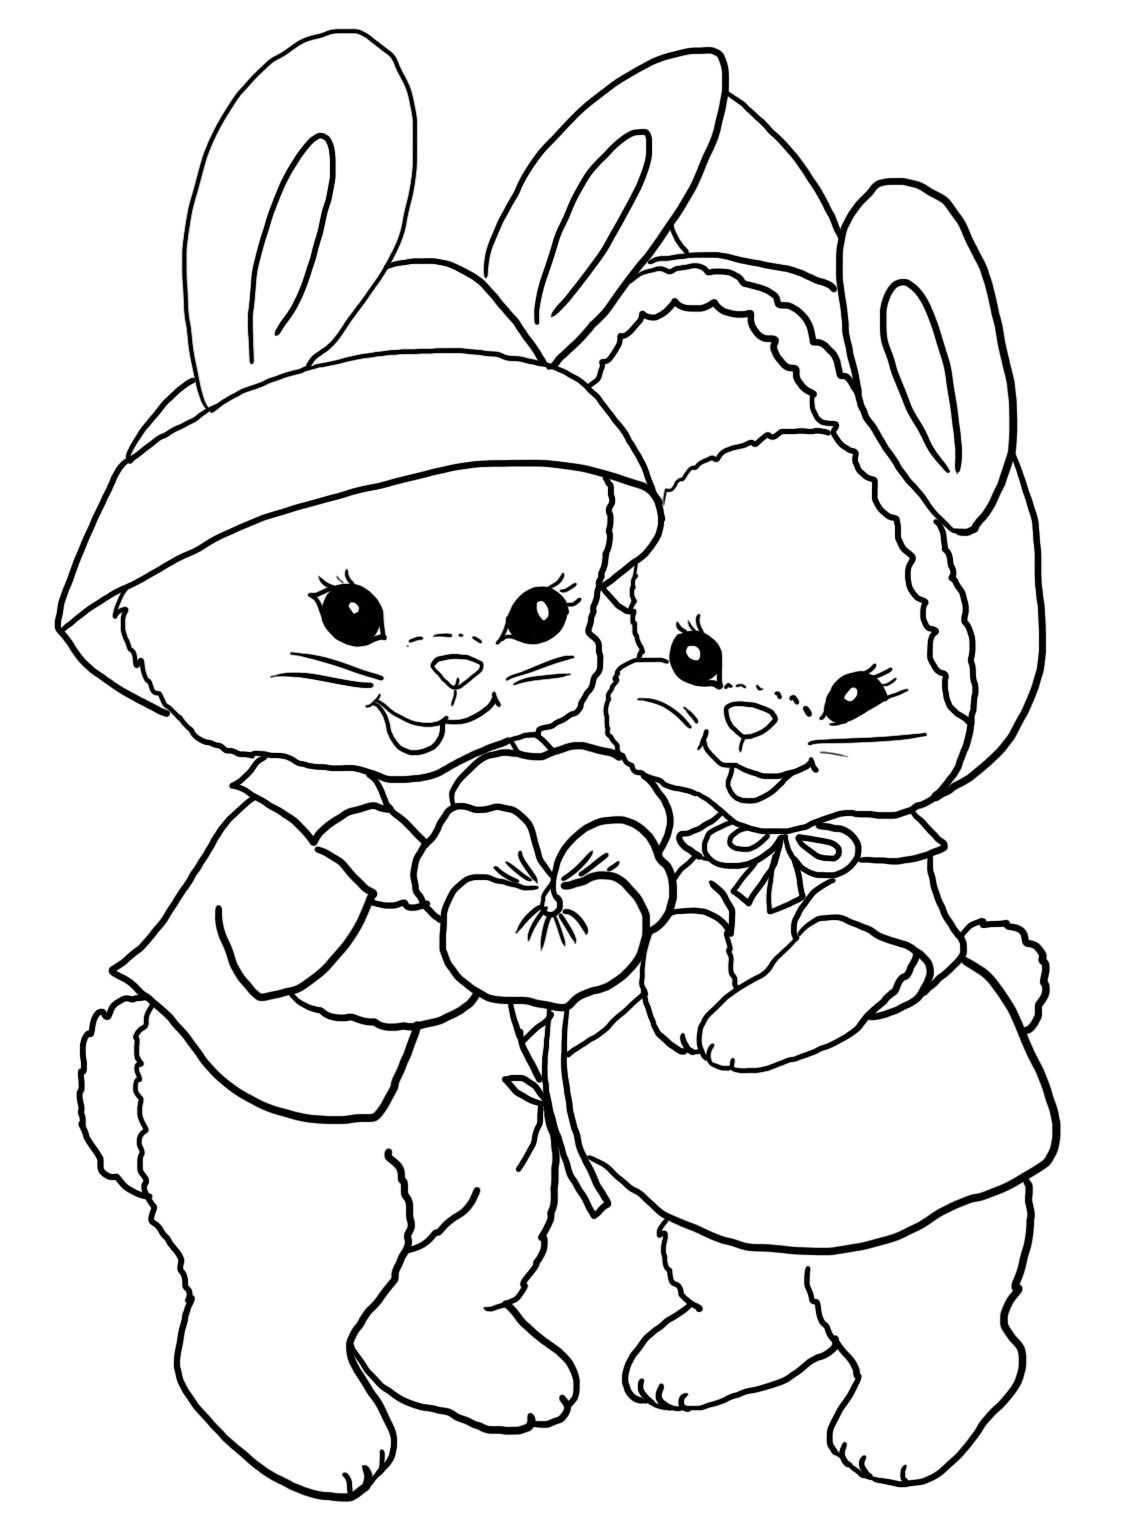 coloring book pages for easter - photo#14